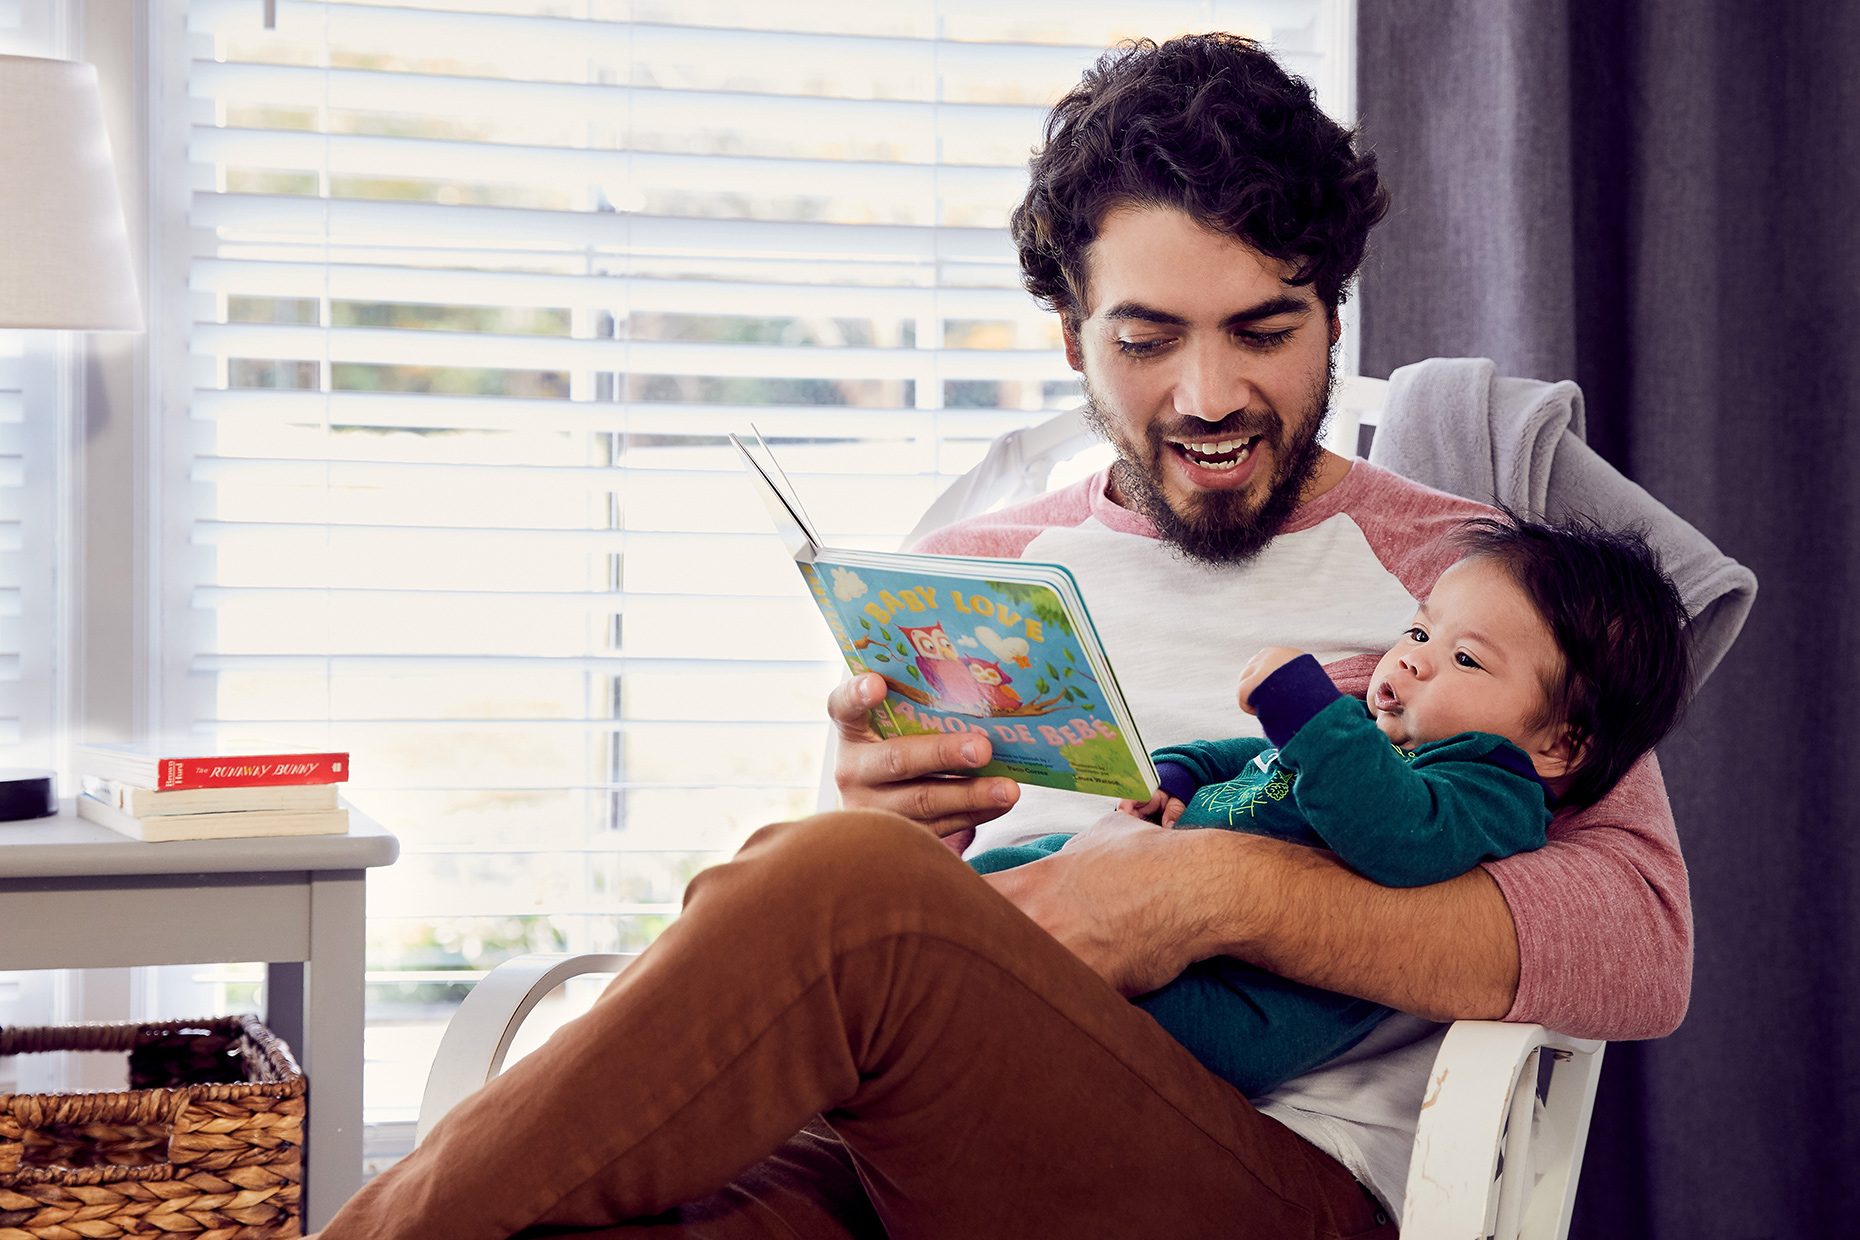 06_FAMILYLIFE_SLP050_SLP17_MIX_3m_Reading_a_book_to_newborn_1856rsfc